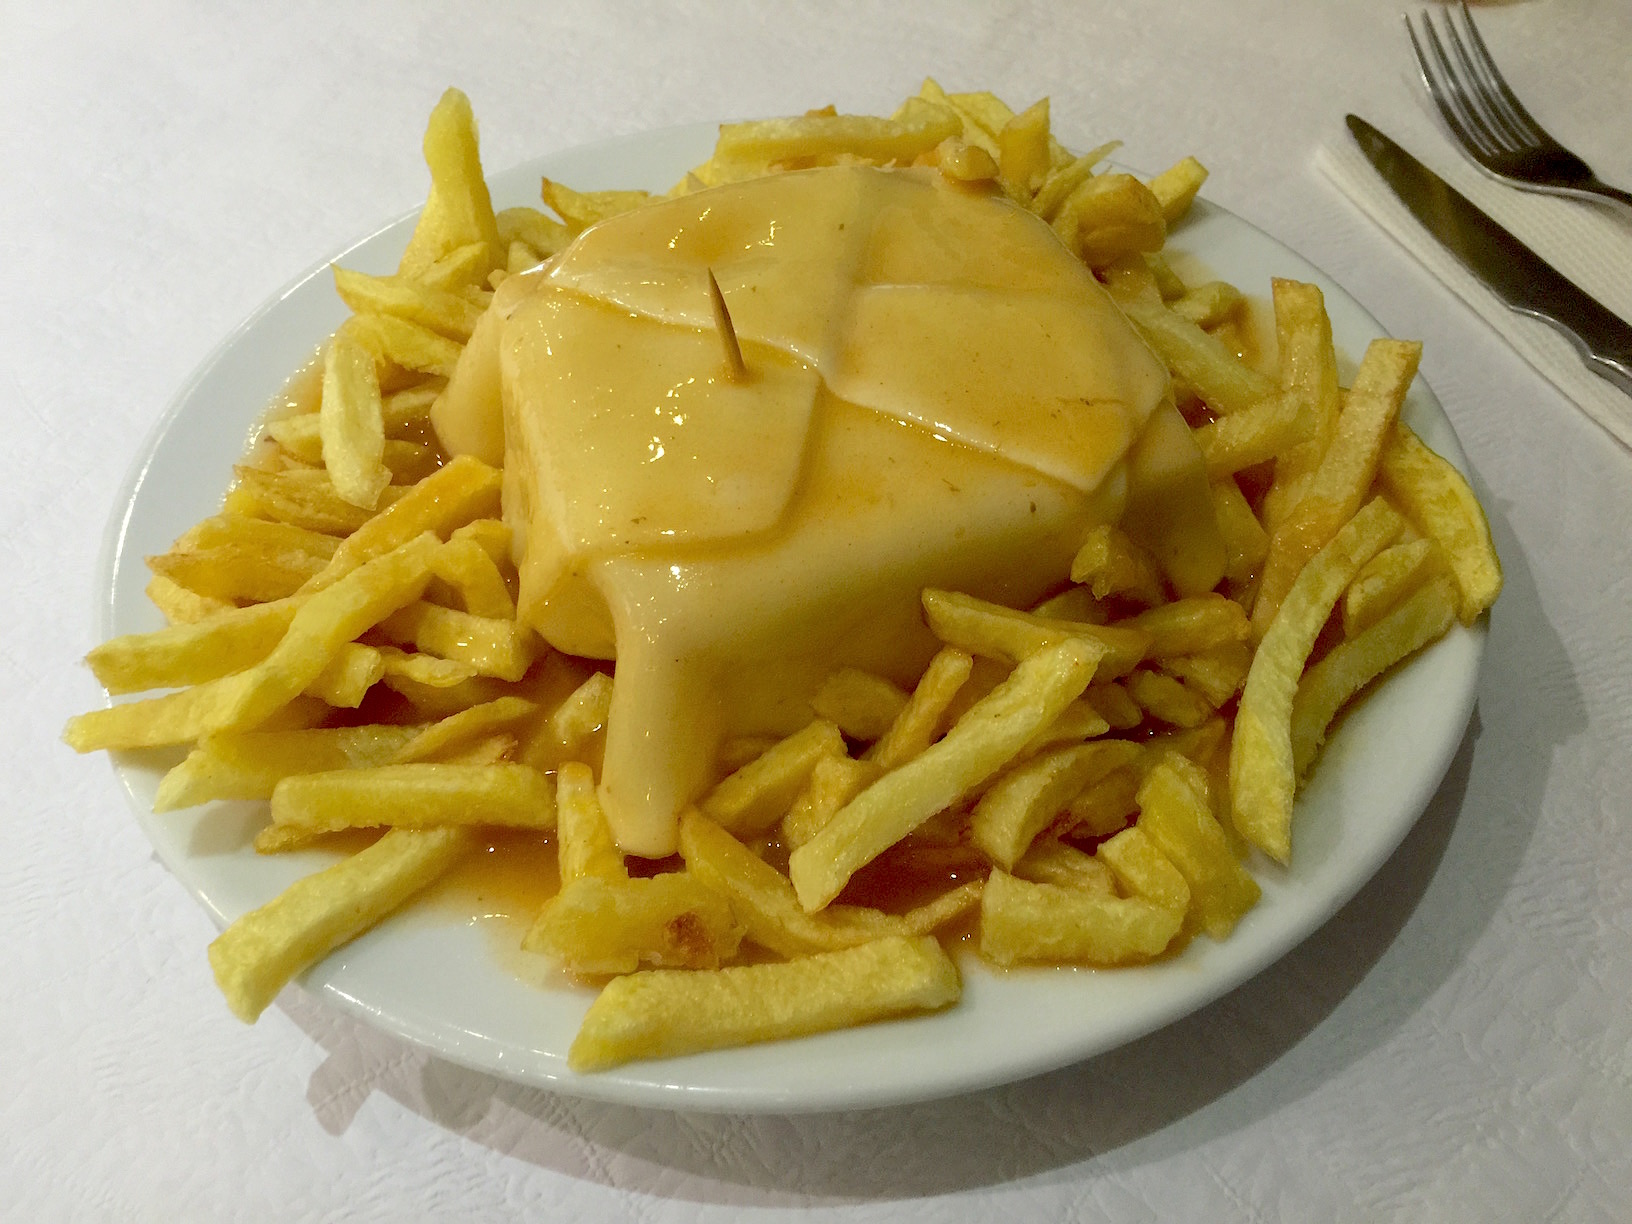 Porto Whole Francesinha Sandwich